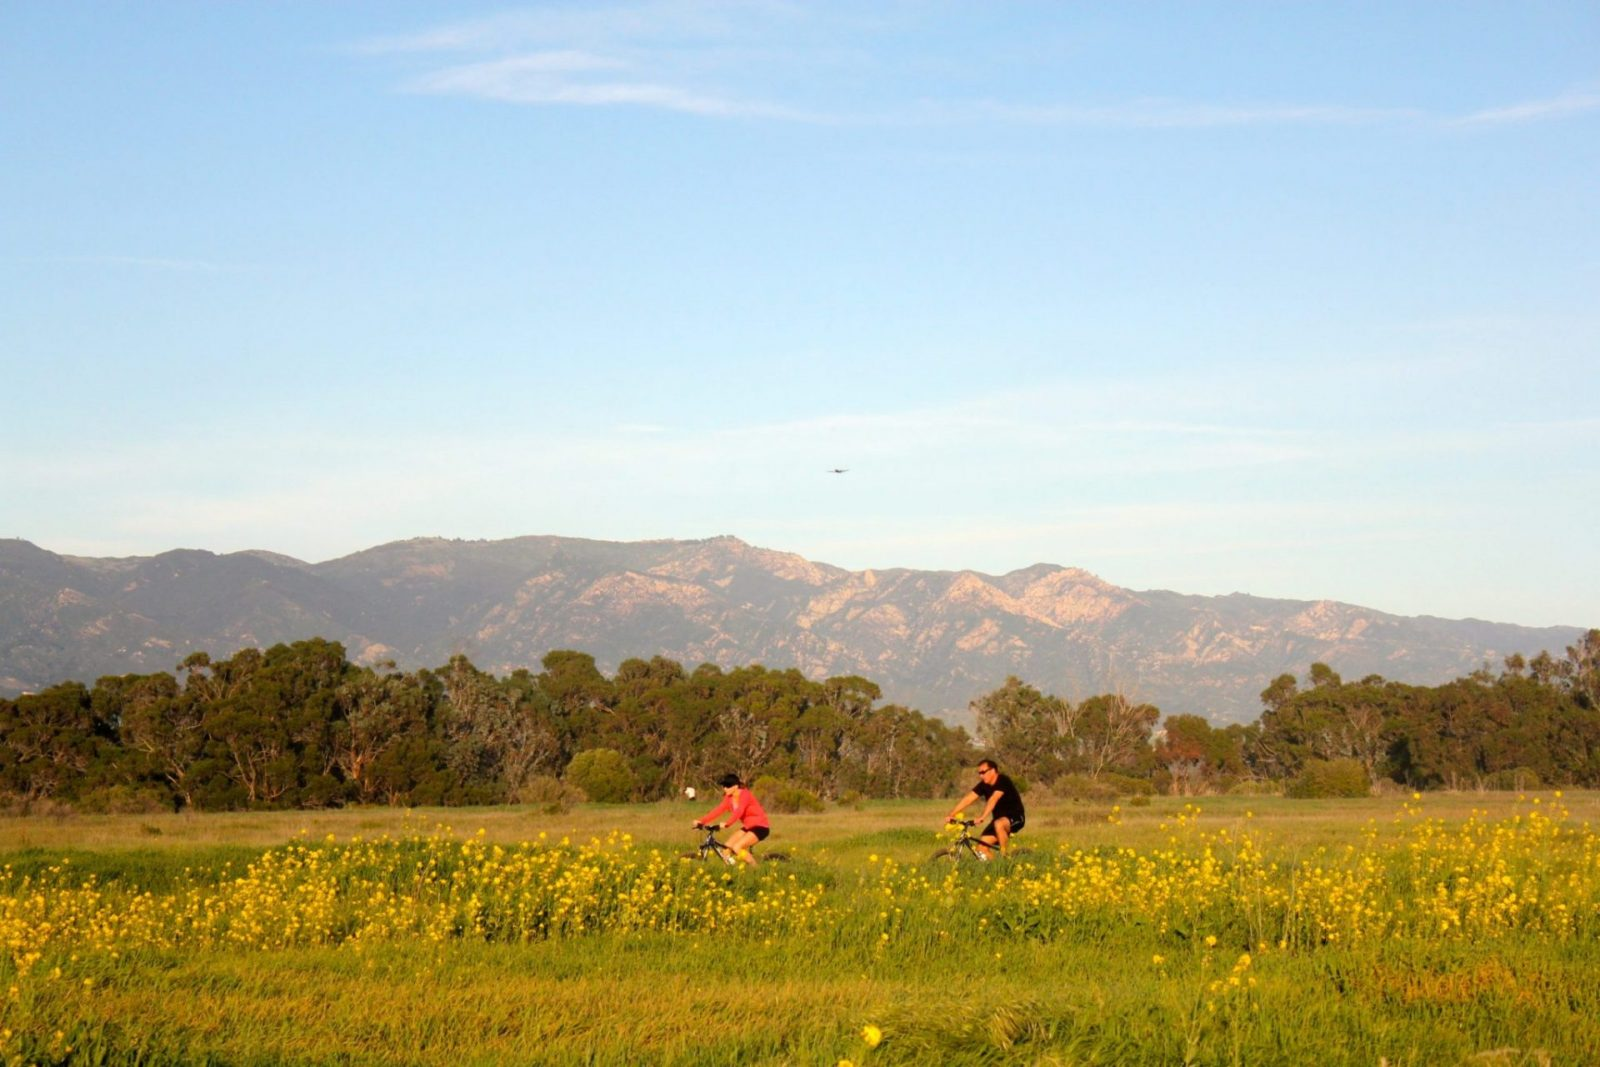 Wildflowers, situated on a vast field, sway in the wind as a male and female cyclist zoom by.